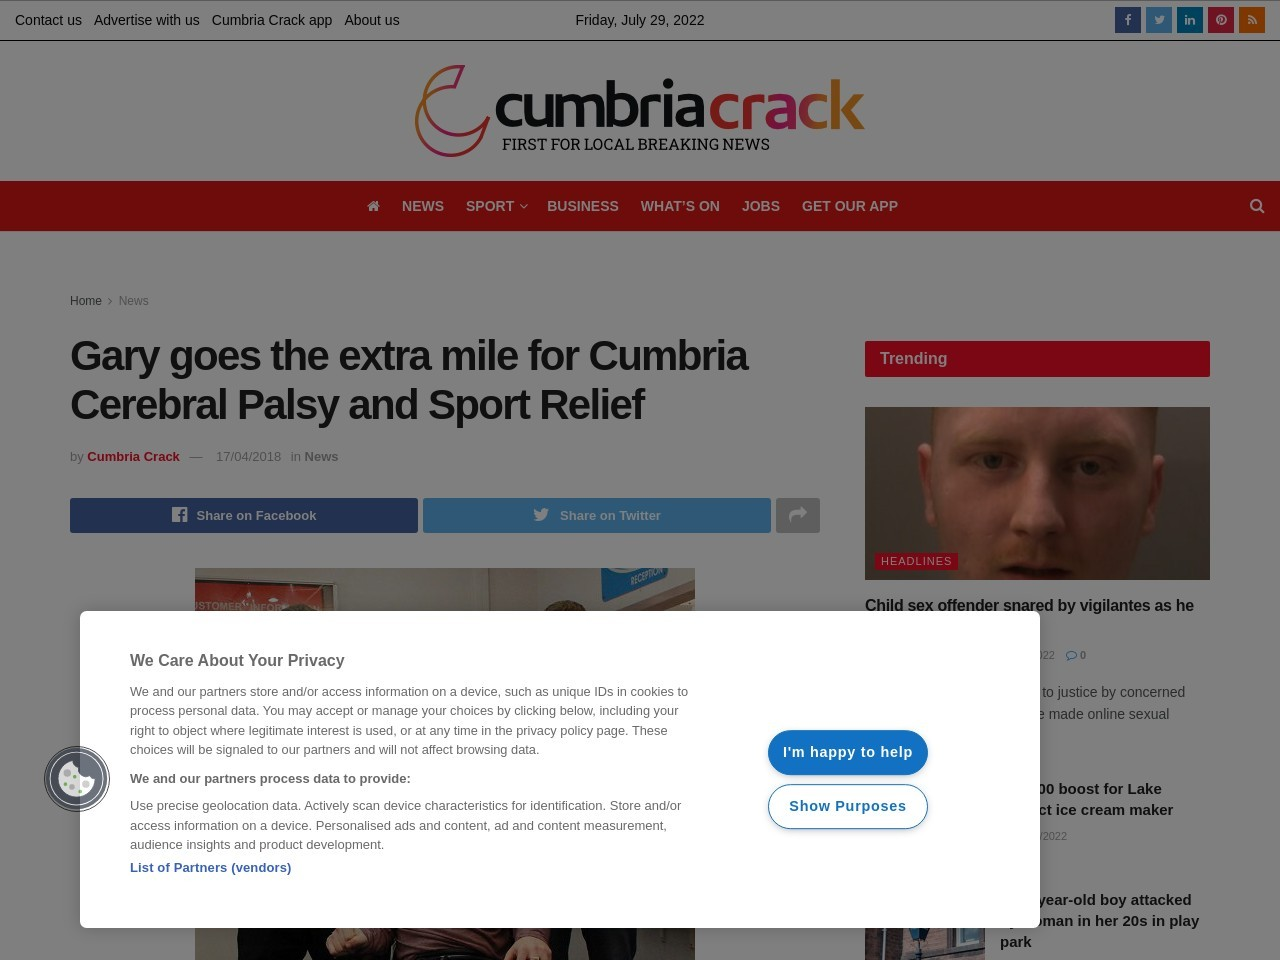 Gary goes the extra mile for Cumbria Cerebral Palsy and Sport Relief